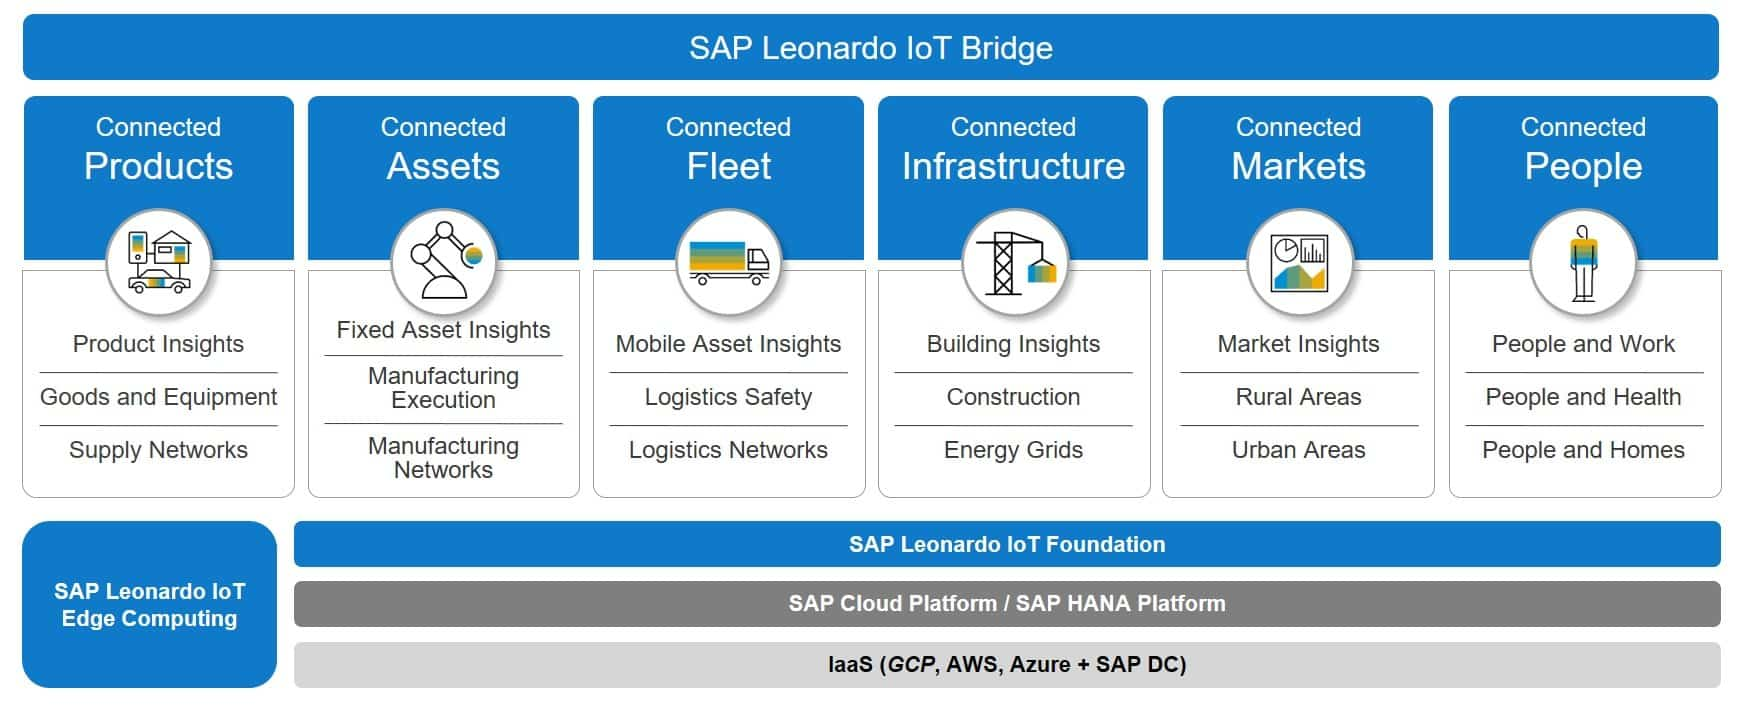 SAP Leonardo Internet of Things